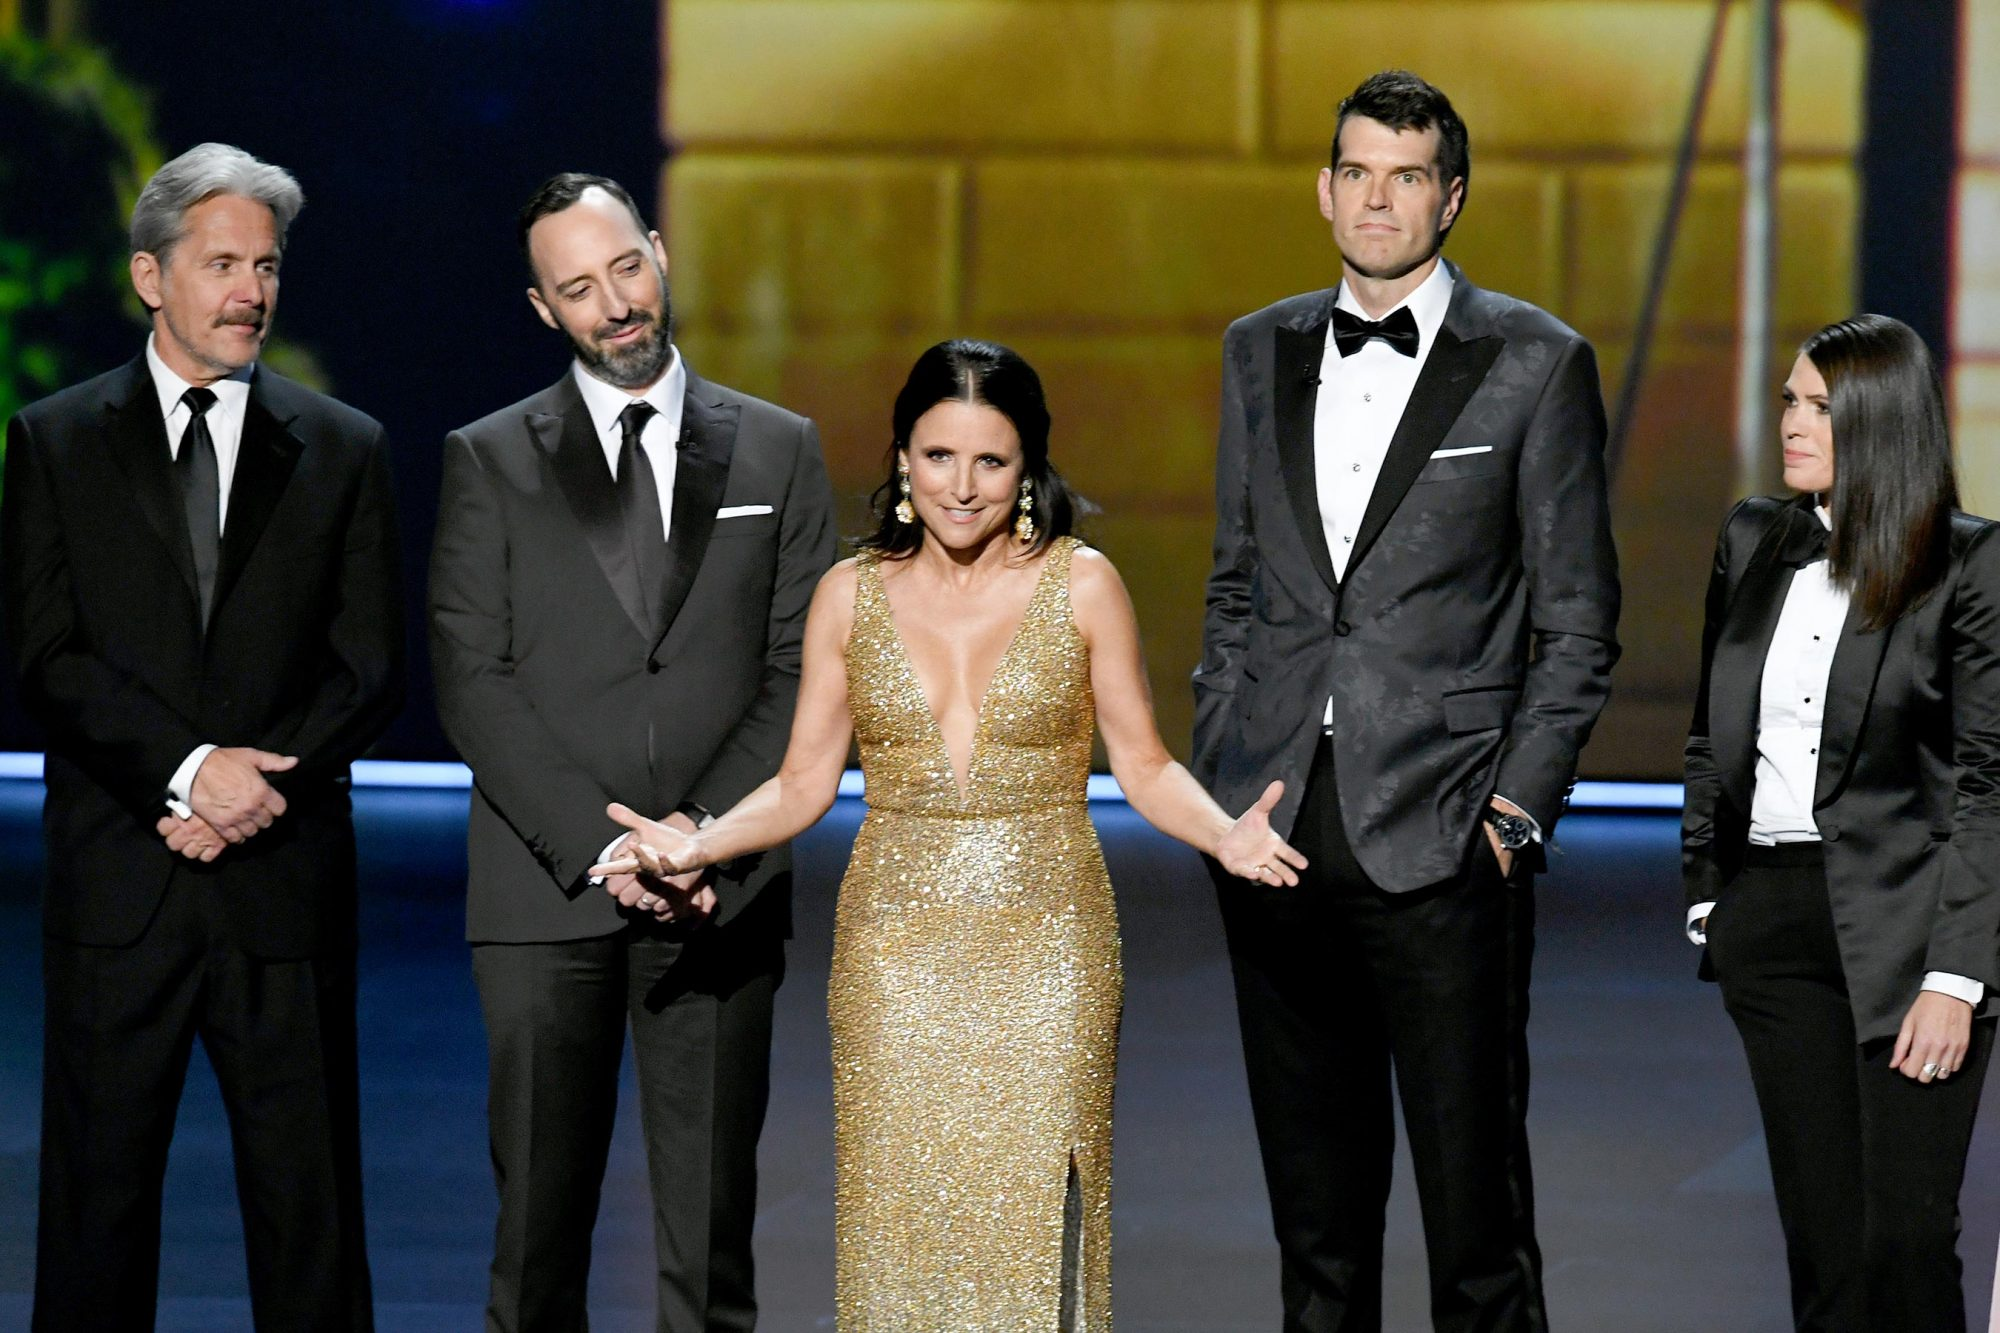 Gary Cole, Tony Hale, Julia Louis-Dreyfus, Timothy Simons, and Clea DuVall